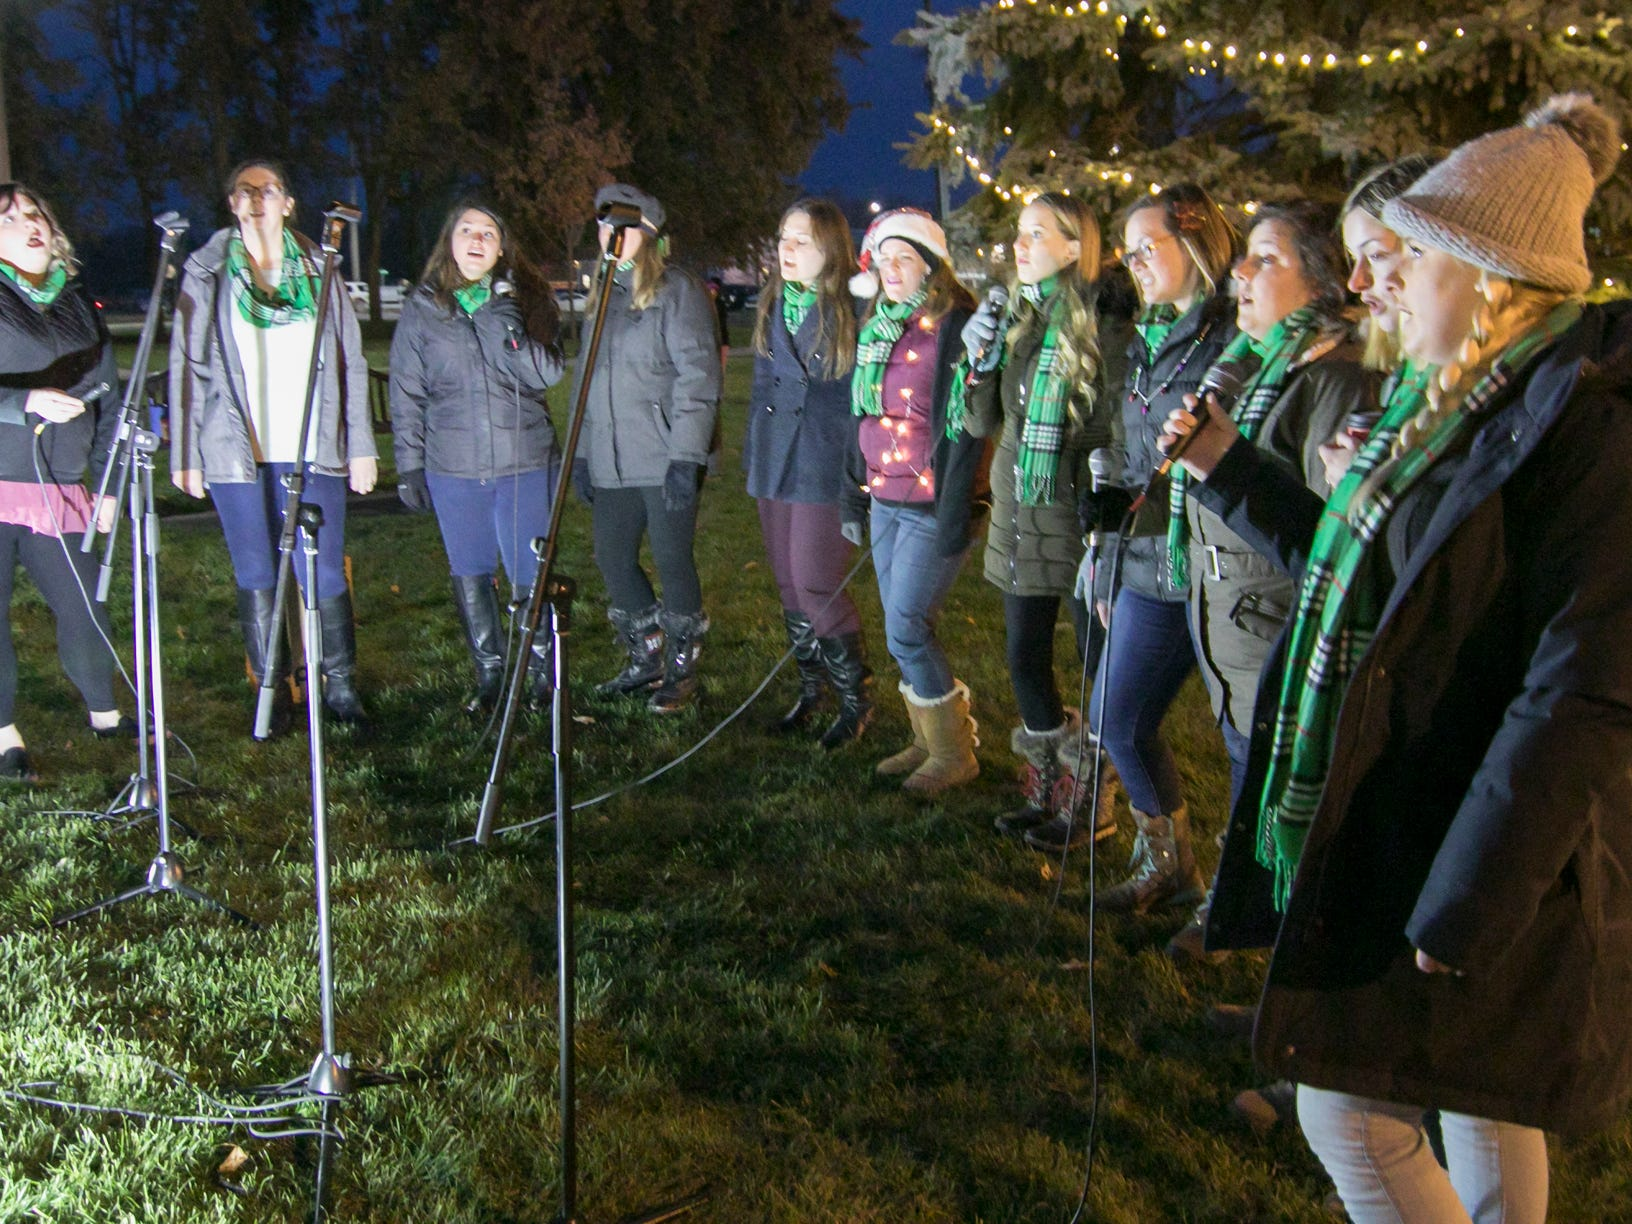 """The Decibelles, an a cappella singing subset of the Livingston County Choirs, sings """"What Child is This?"""" Friday, Nov. 23, 2018 before the start of the Fantasy of Lights parade."""